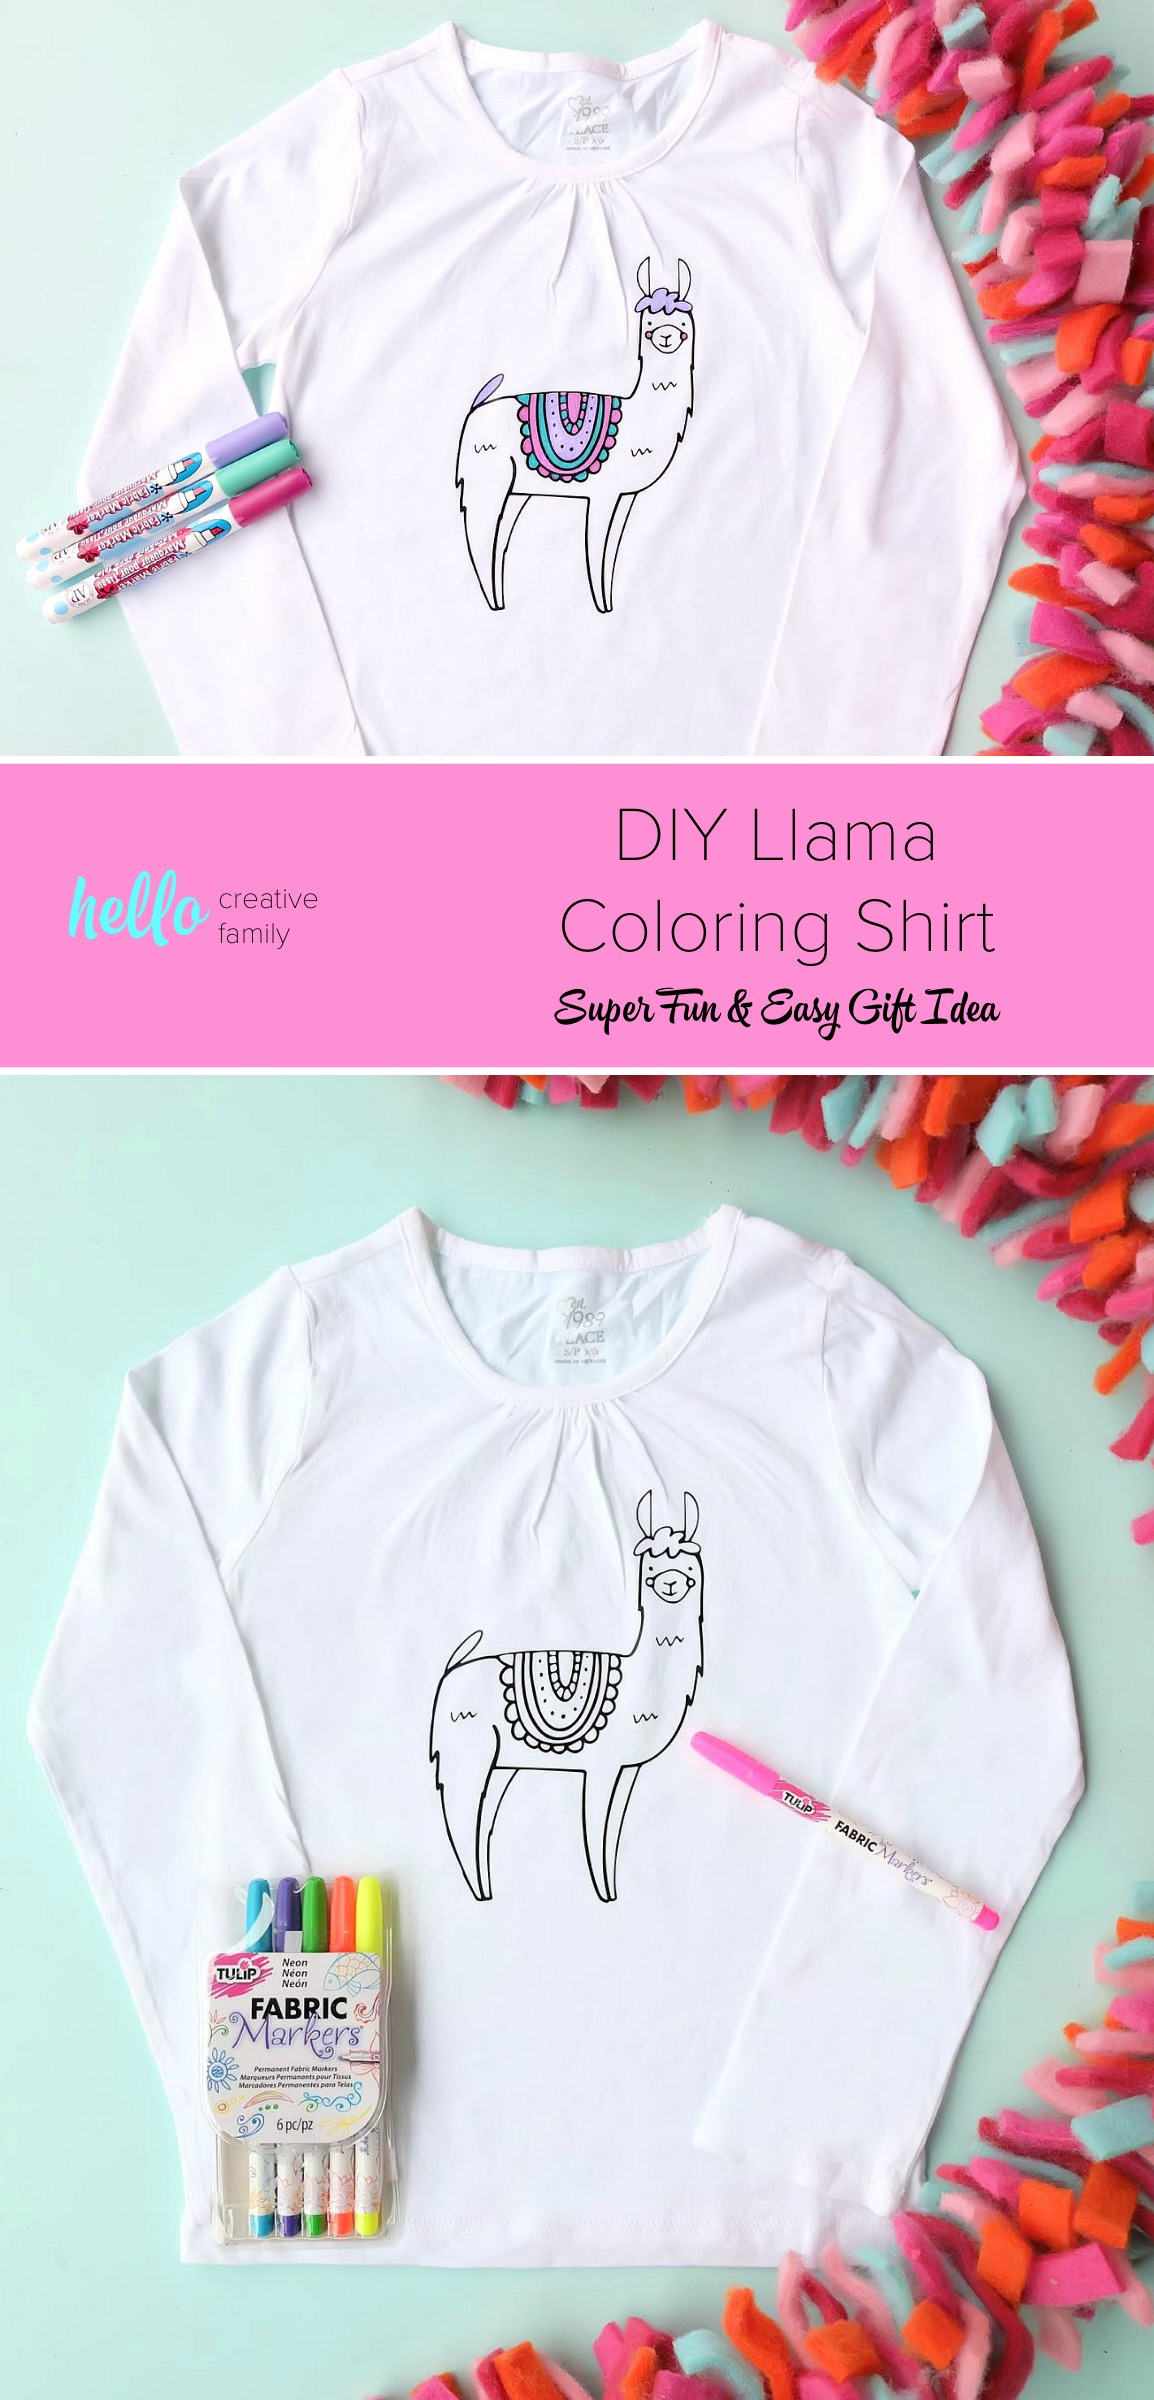 Diy Llama Coloring Shirt Super Fun And Easy Gift Idea Hello